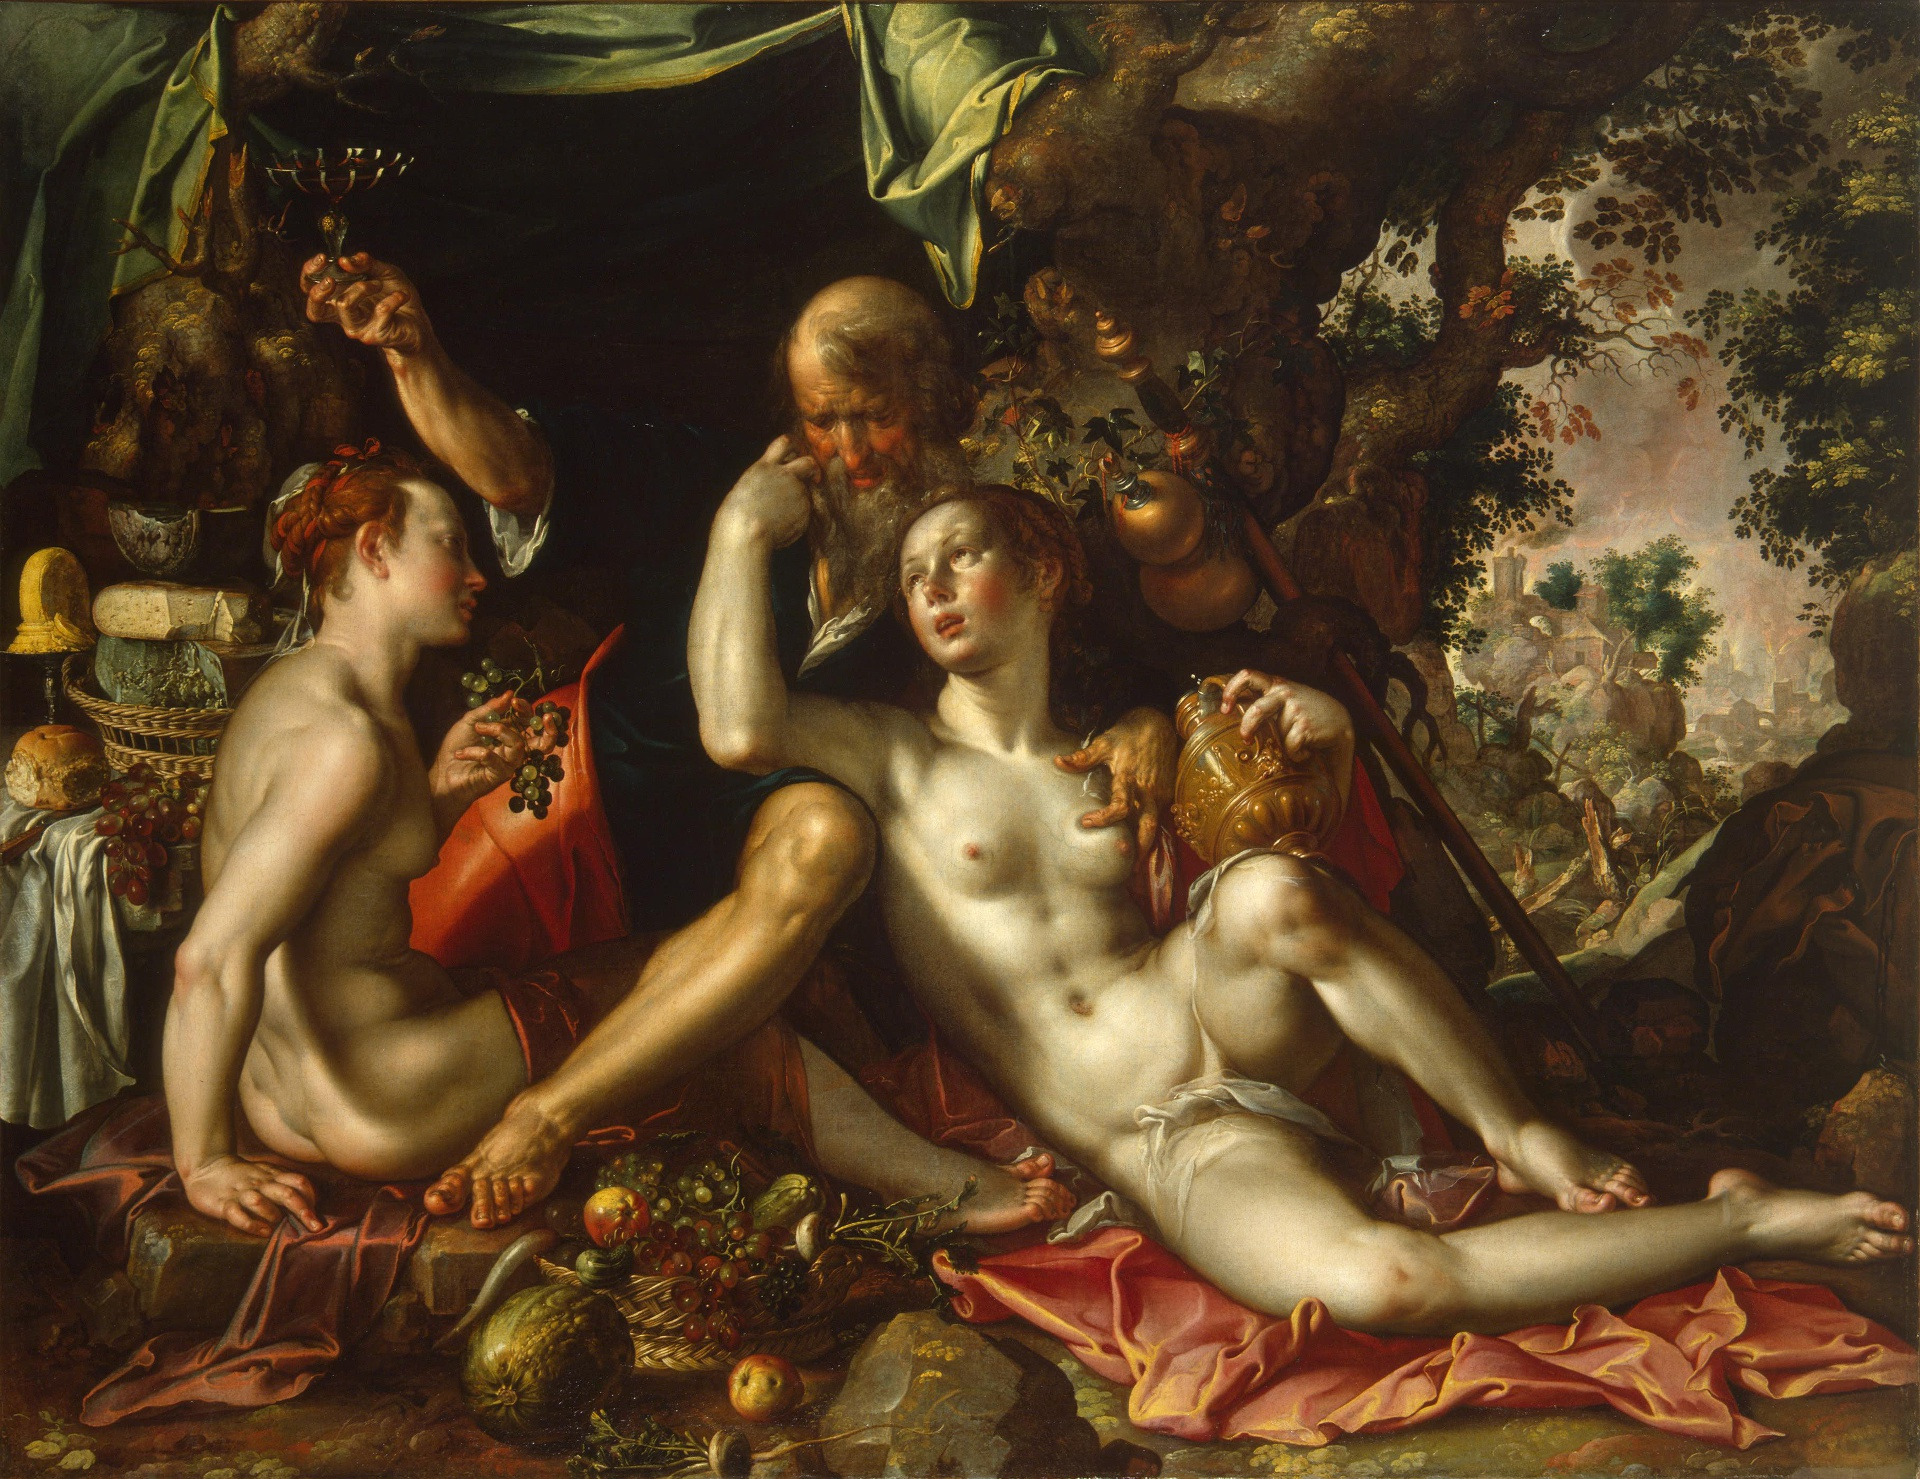 Joachim Wtewael (1566-1638), <em>Lot and his Daughters</em>, ca. 1600 State Hermitage Museum, St. Petersburg